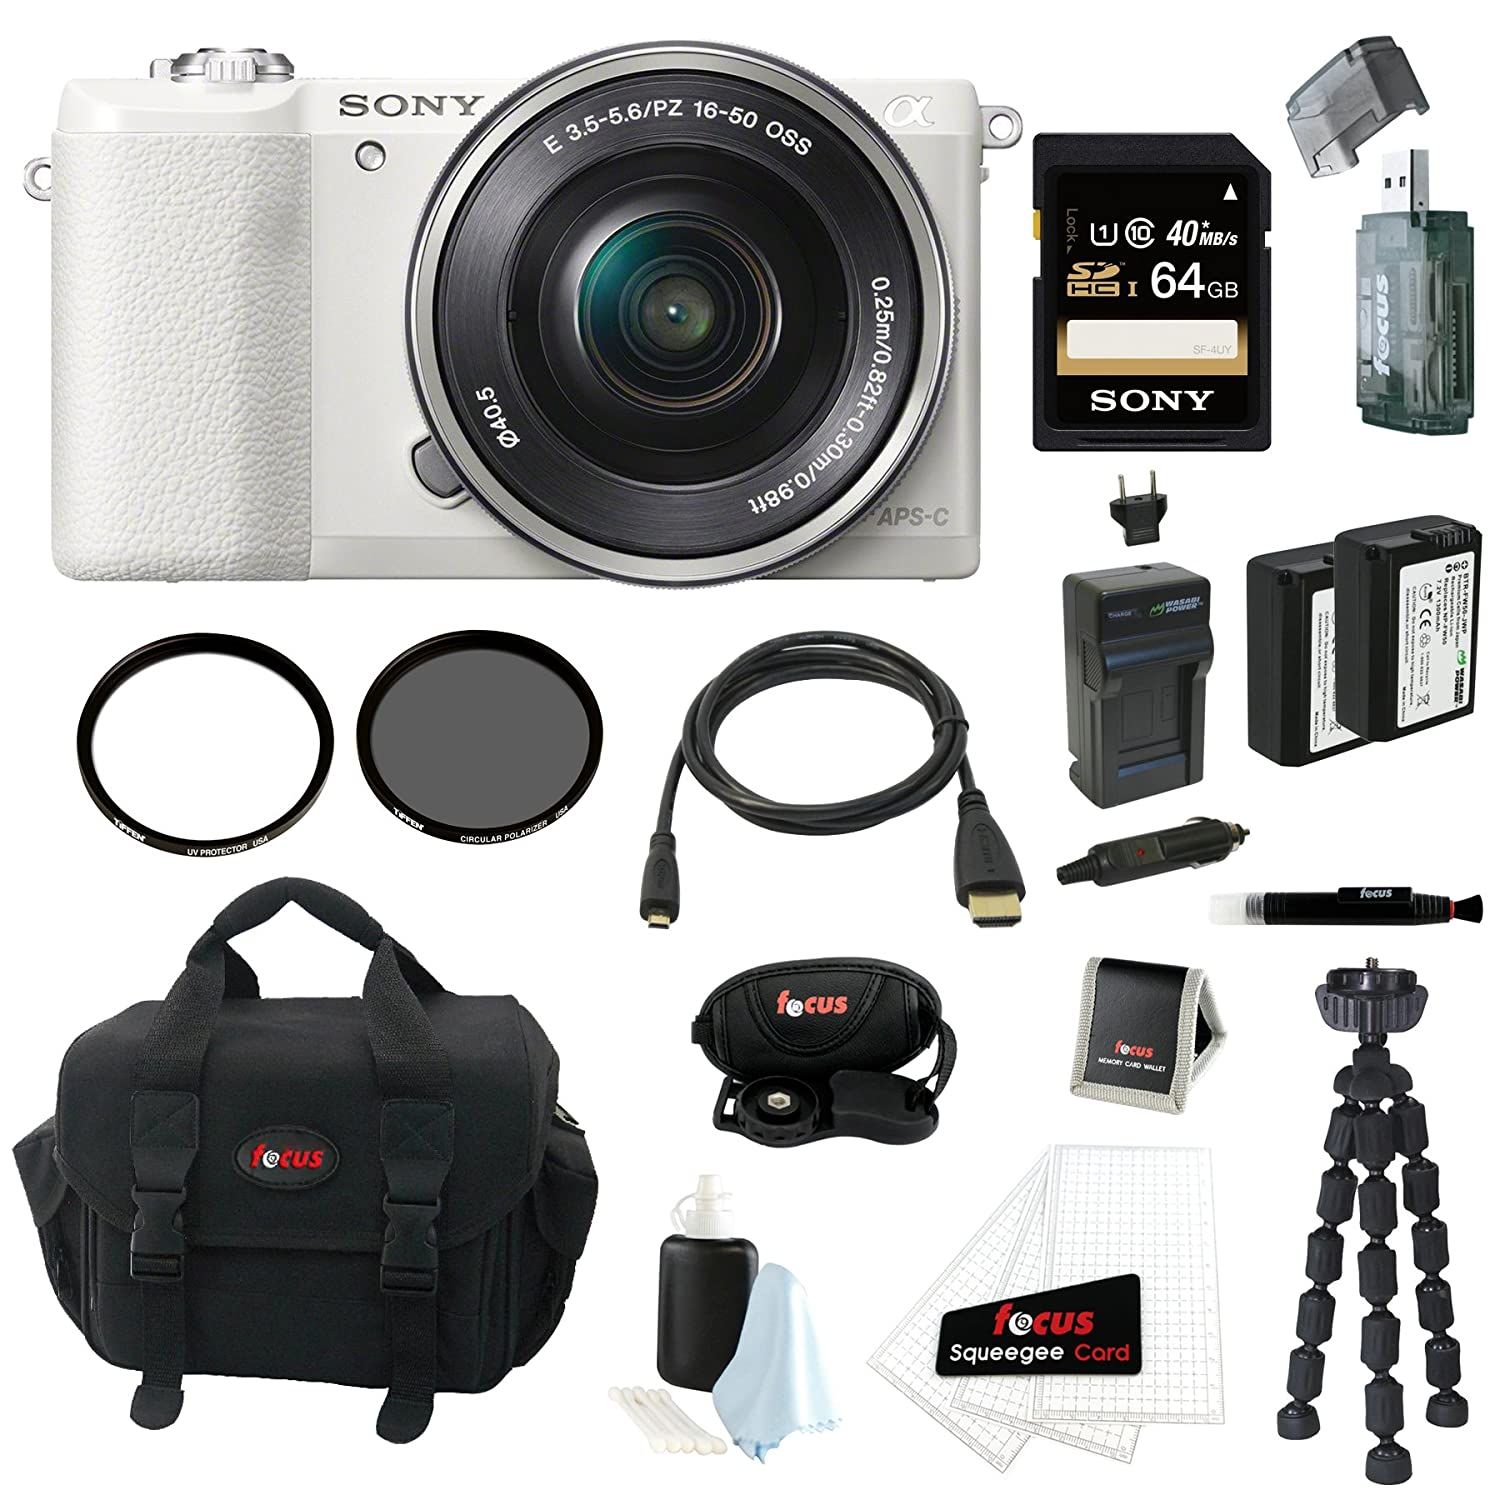 Sony Alpha a5100 ILCE5100 ILCE5100L/W with 16-50mm Lens 24MP Mirrorless Interchangeable Lens Digital Camera (White) + Sony 64GB Class 10 Memory Card  ...